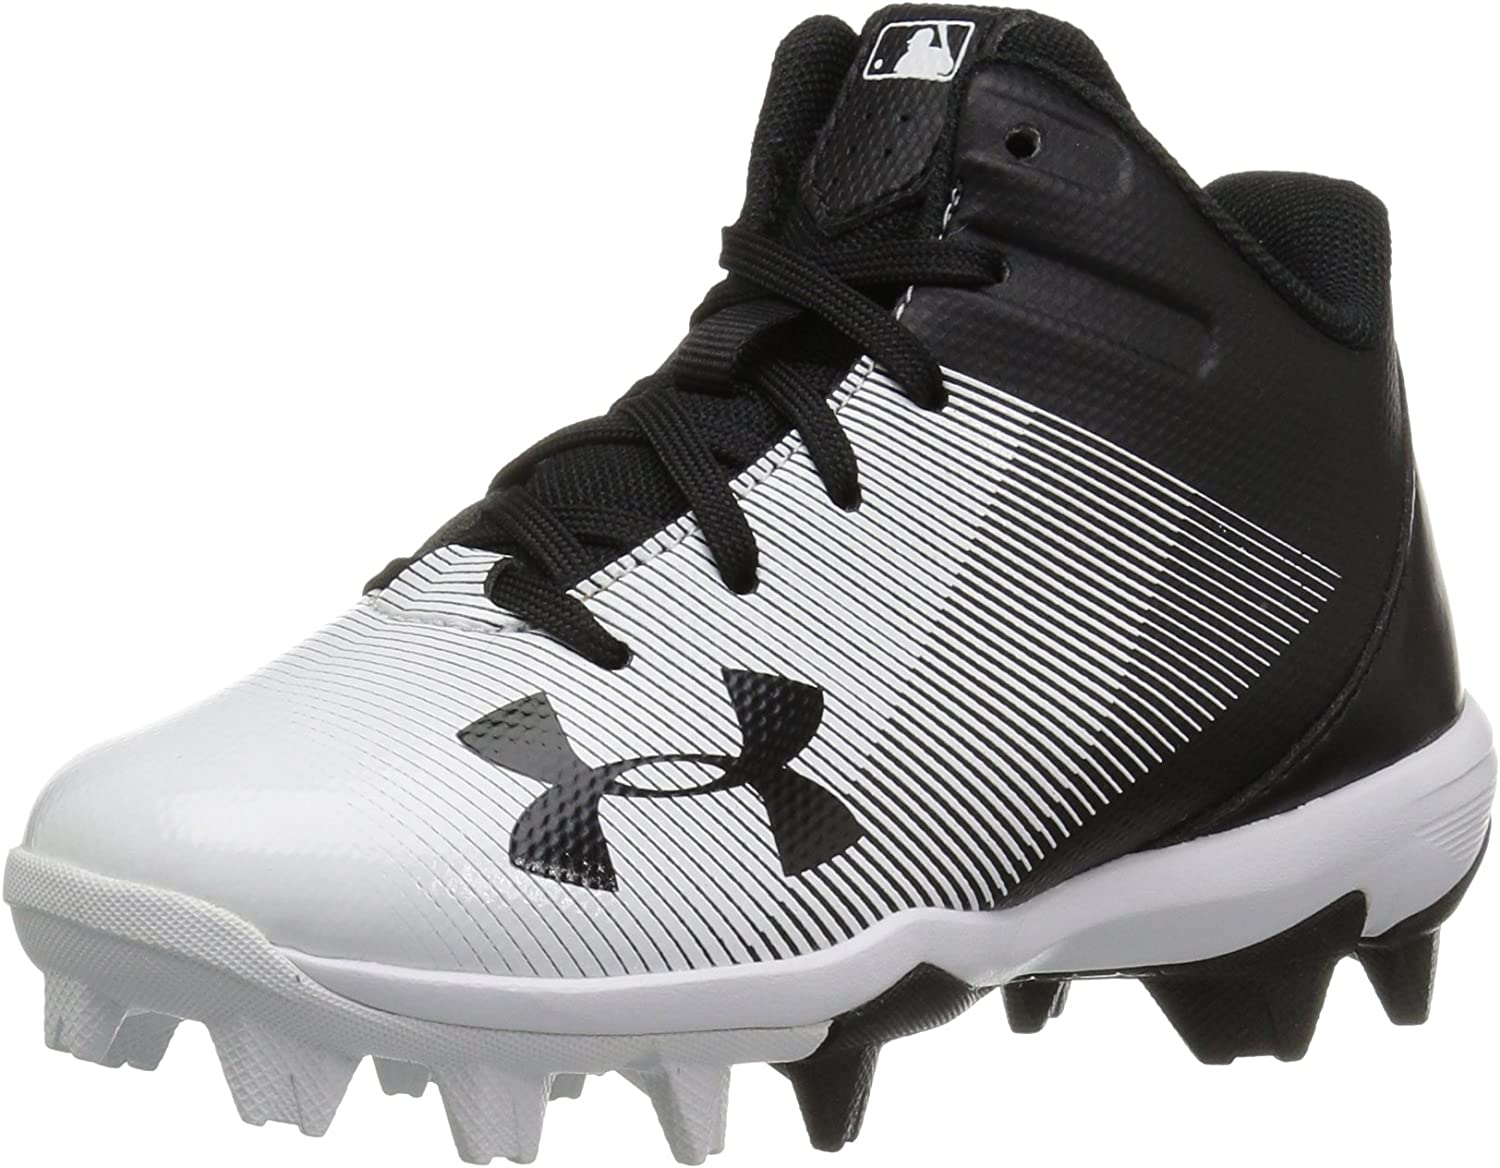 New Youth Under Armour Renegade RM Mid Football Cleats Black//White Sz 6Y